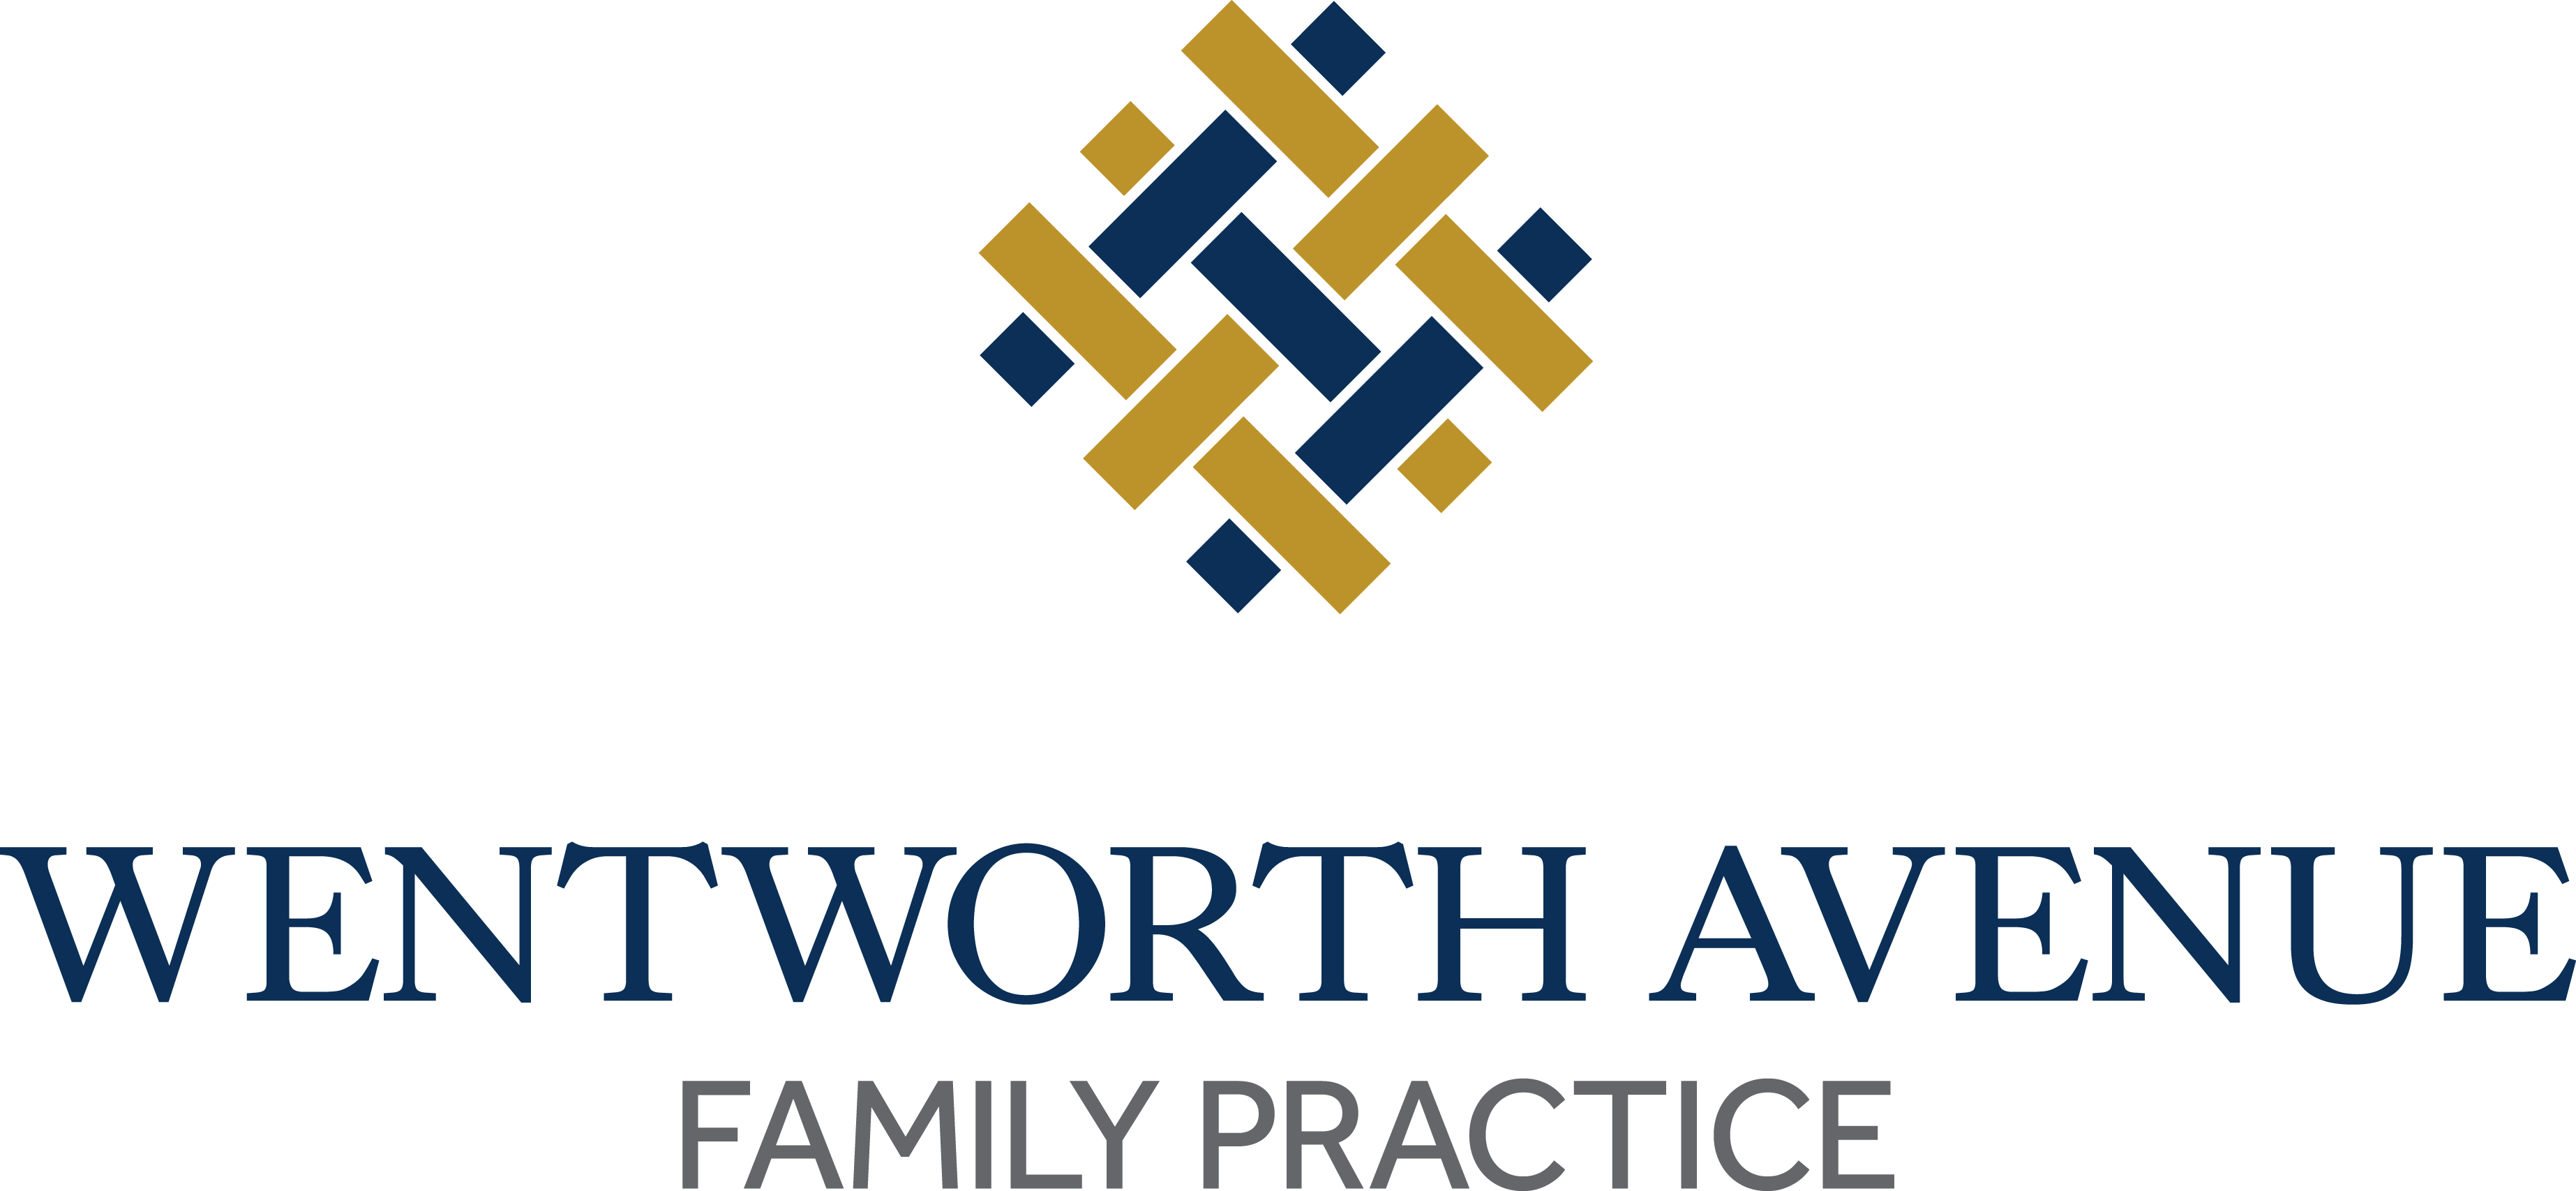 Wentworth Avenue Family Practice Logo